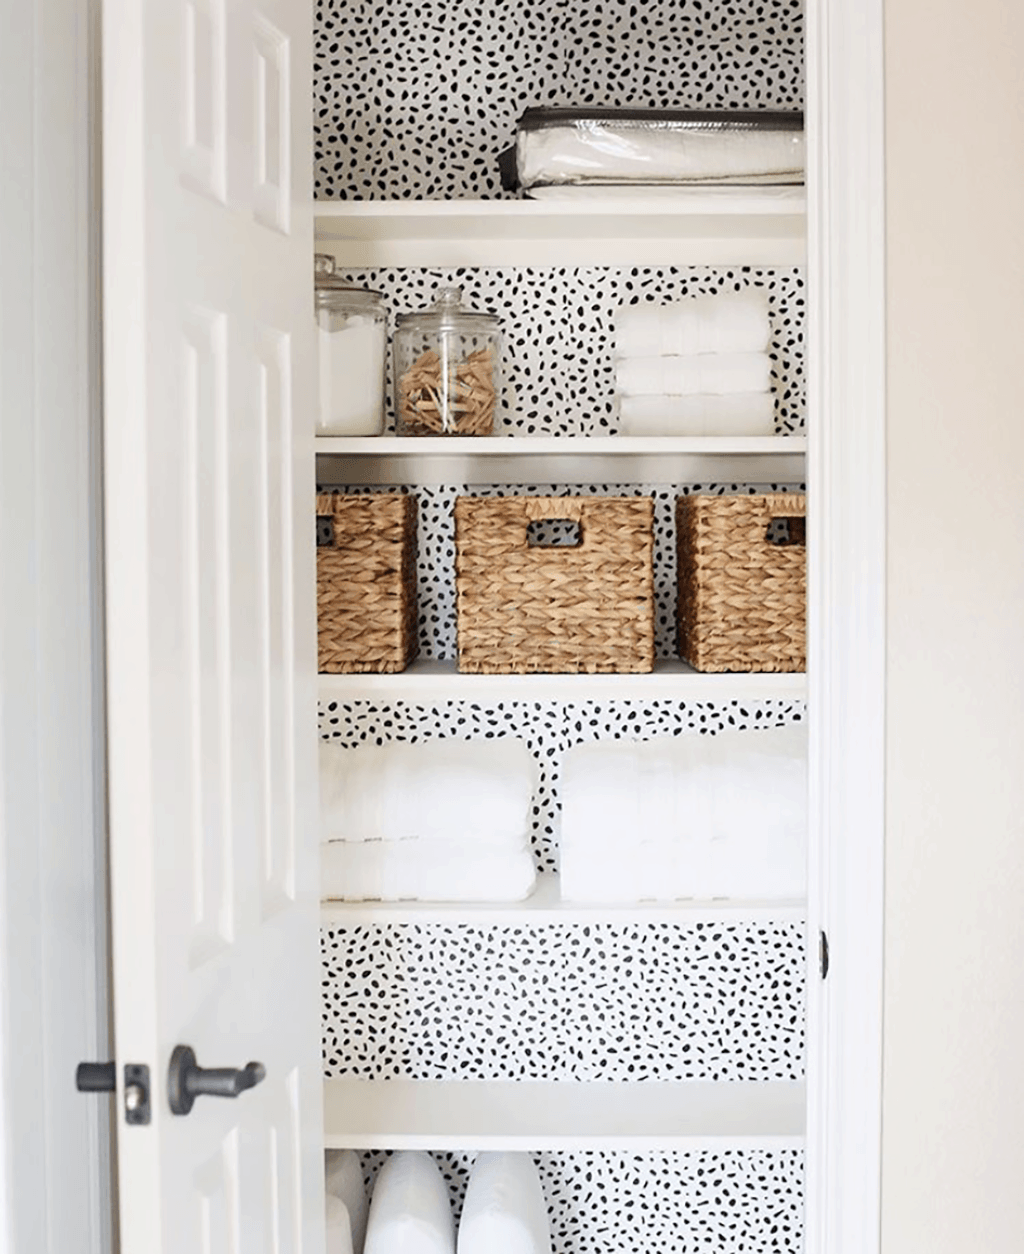 Amazing Before And After Linen Closet Makeover Helpful